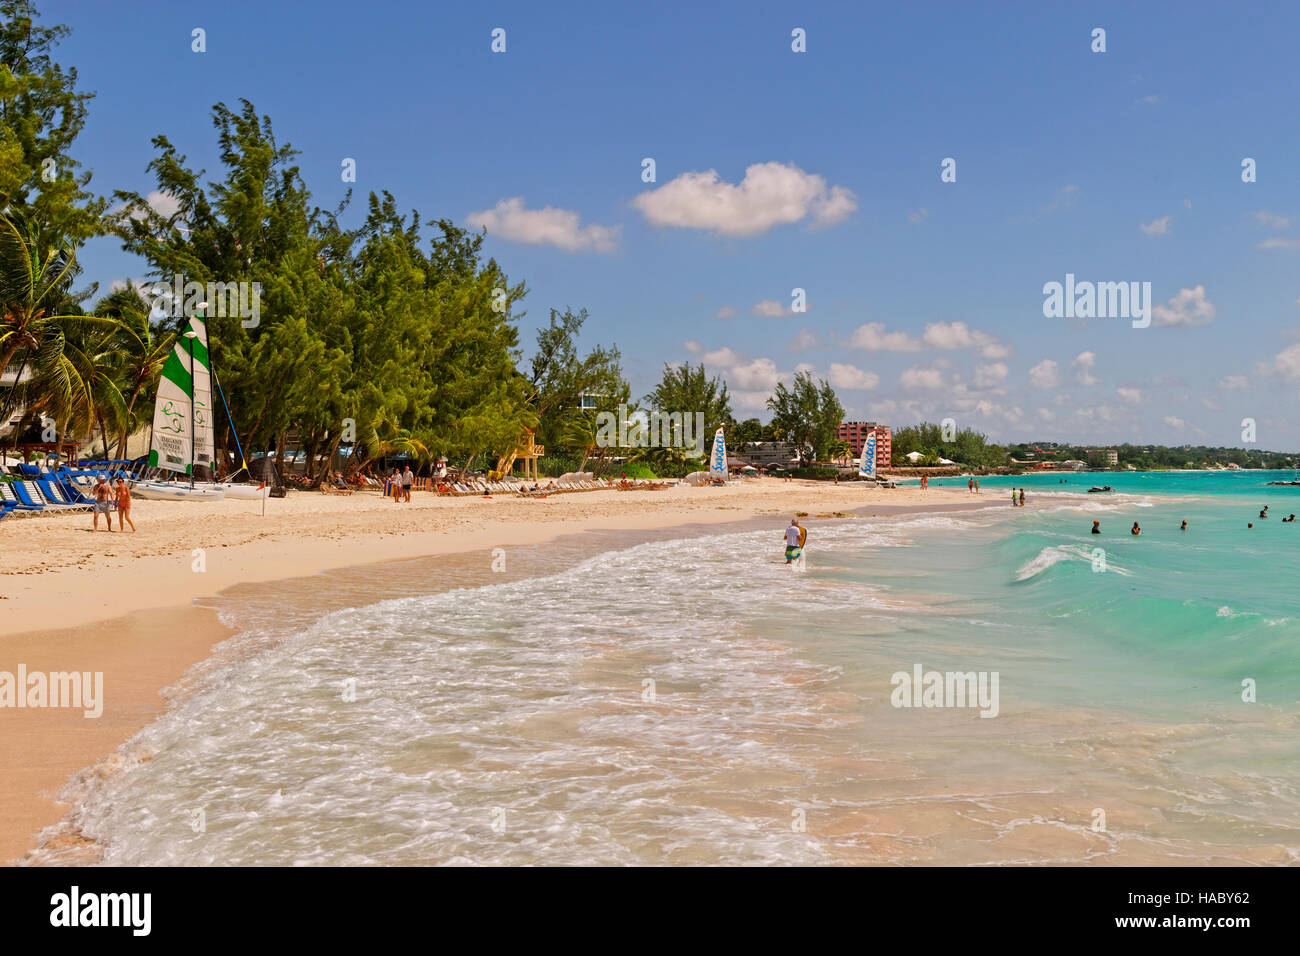 Dover Beach fronting the Turtle Beach Hotel resort and the Sandals resort looking towards Maxwell beach and Oistins. - Stock Image